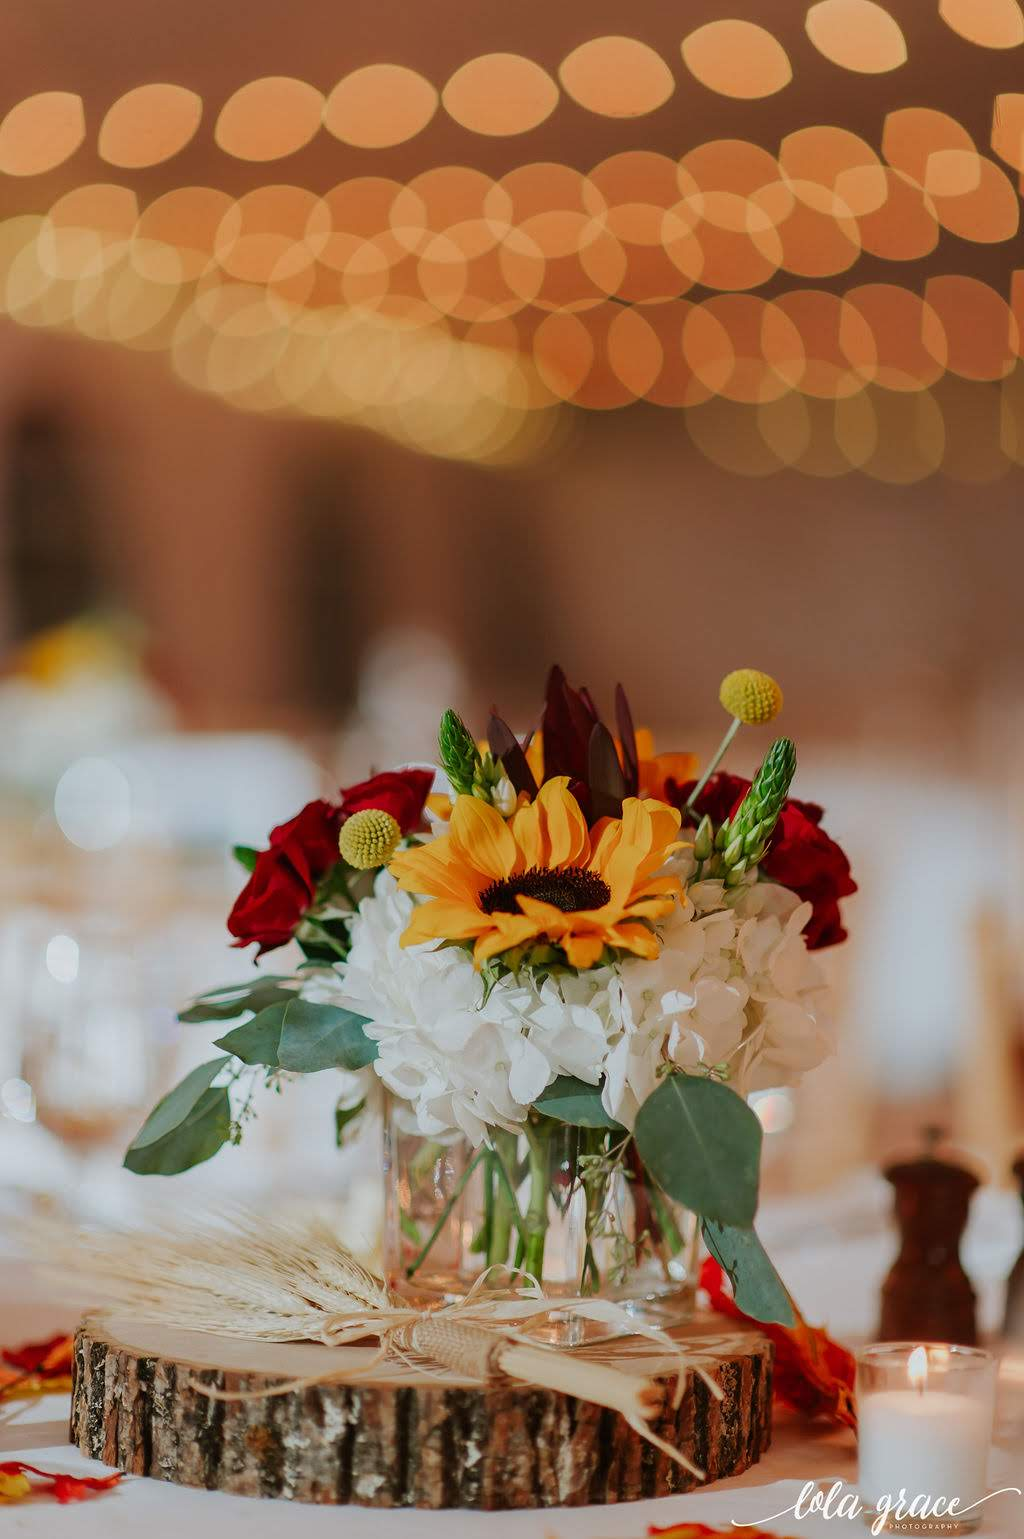 Just the right amount of fall decor for their centerpieces.